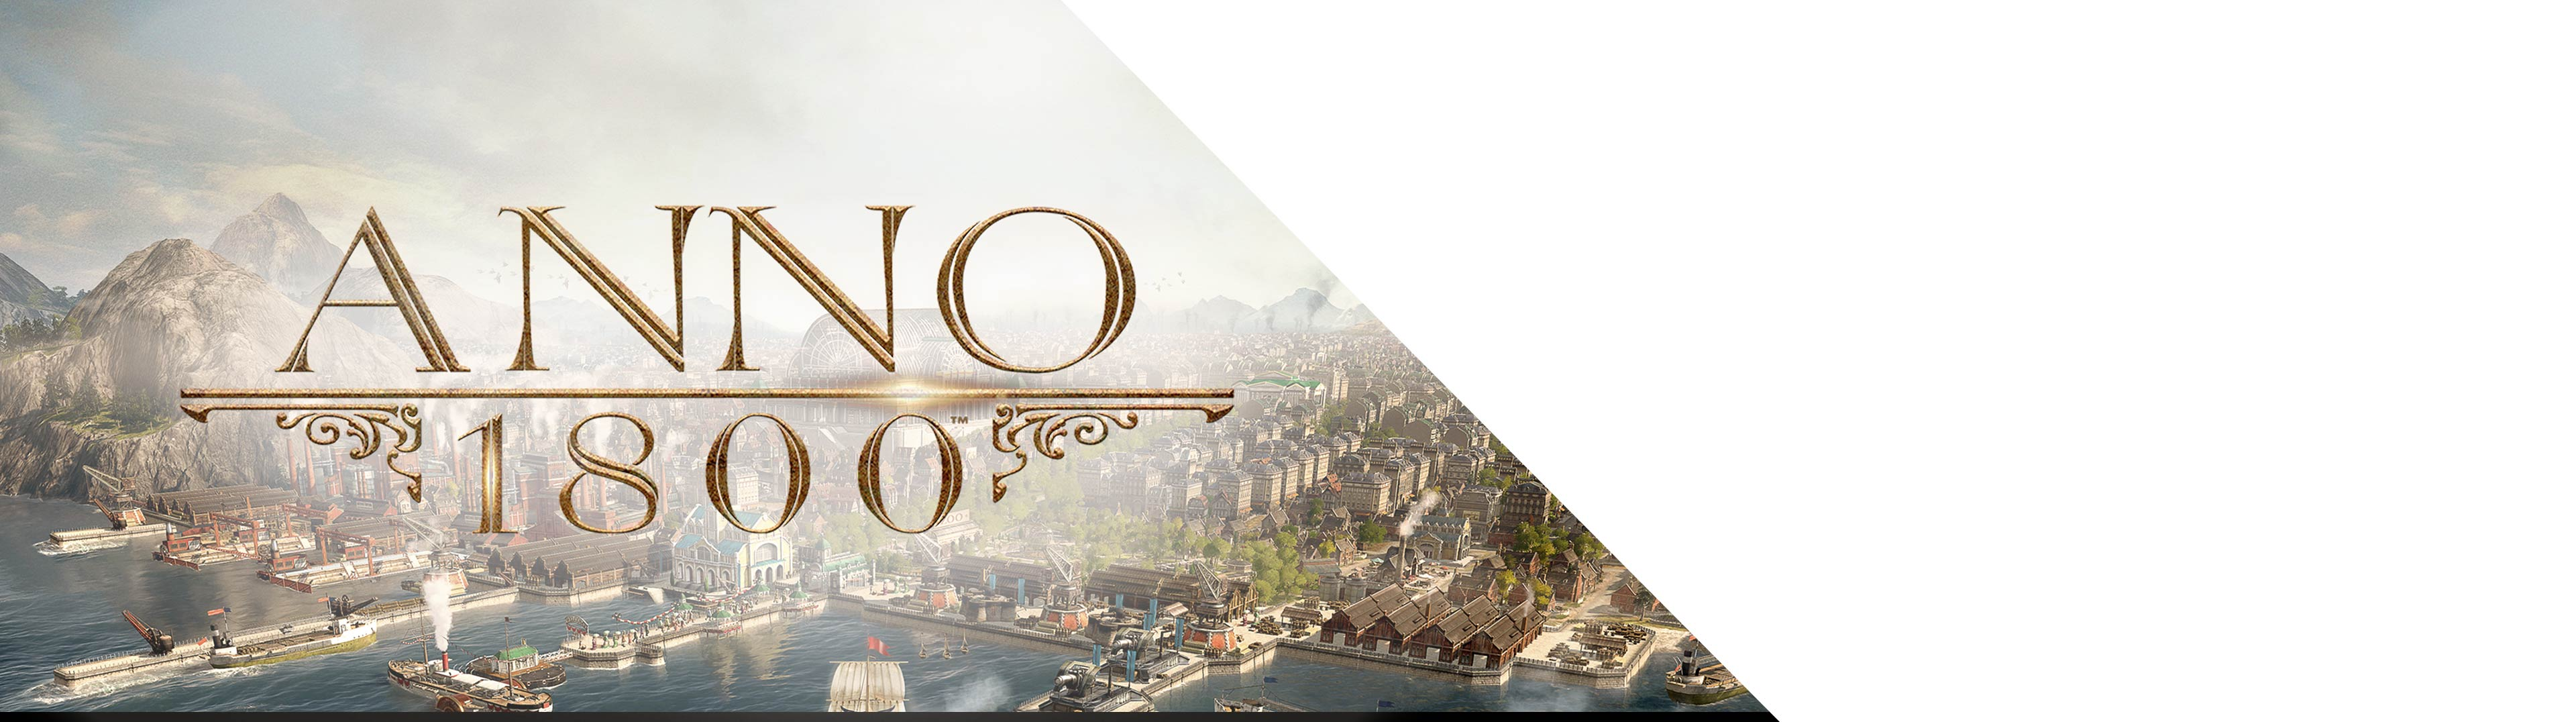 SAVE UP TO 50% OFF ANNO 1800